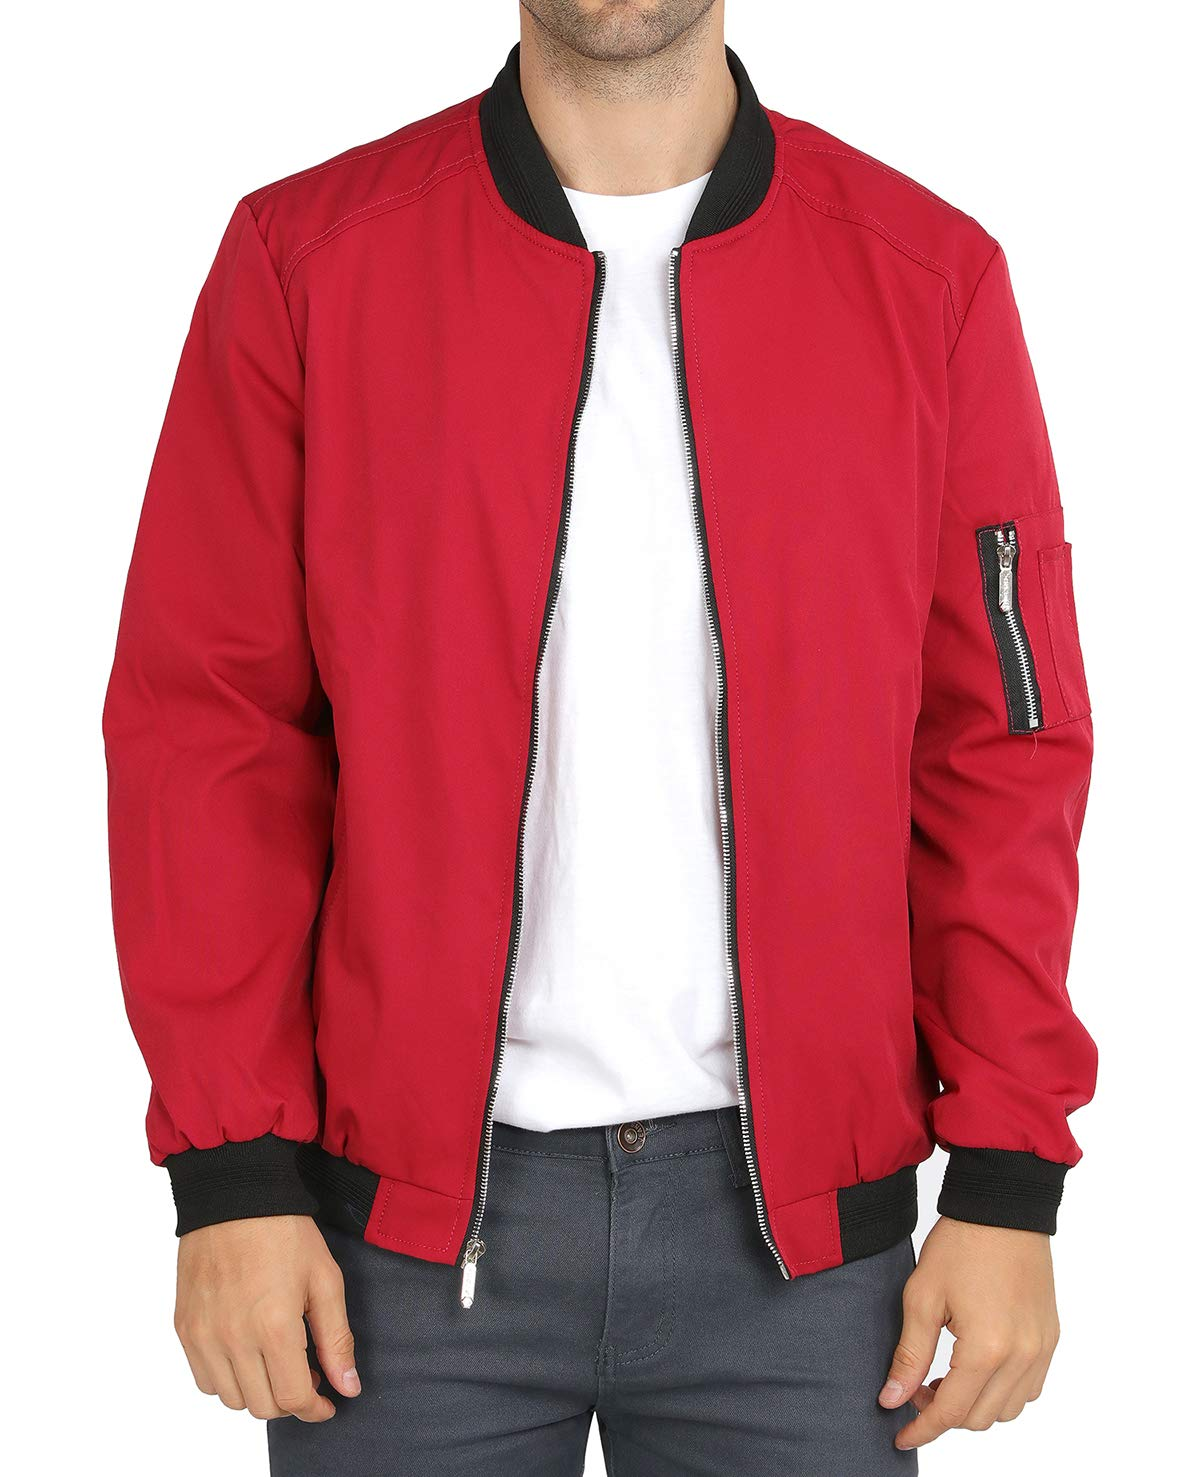 WULFUL Mens Casual Lightweight Jacket Softshell Flight Bomber Jacket Varsity Coat Wine Red Size Medium by WULFUL